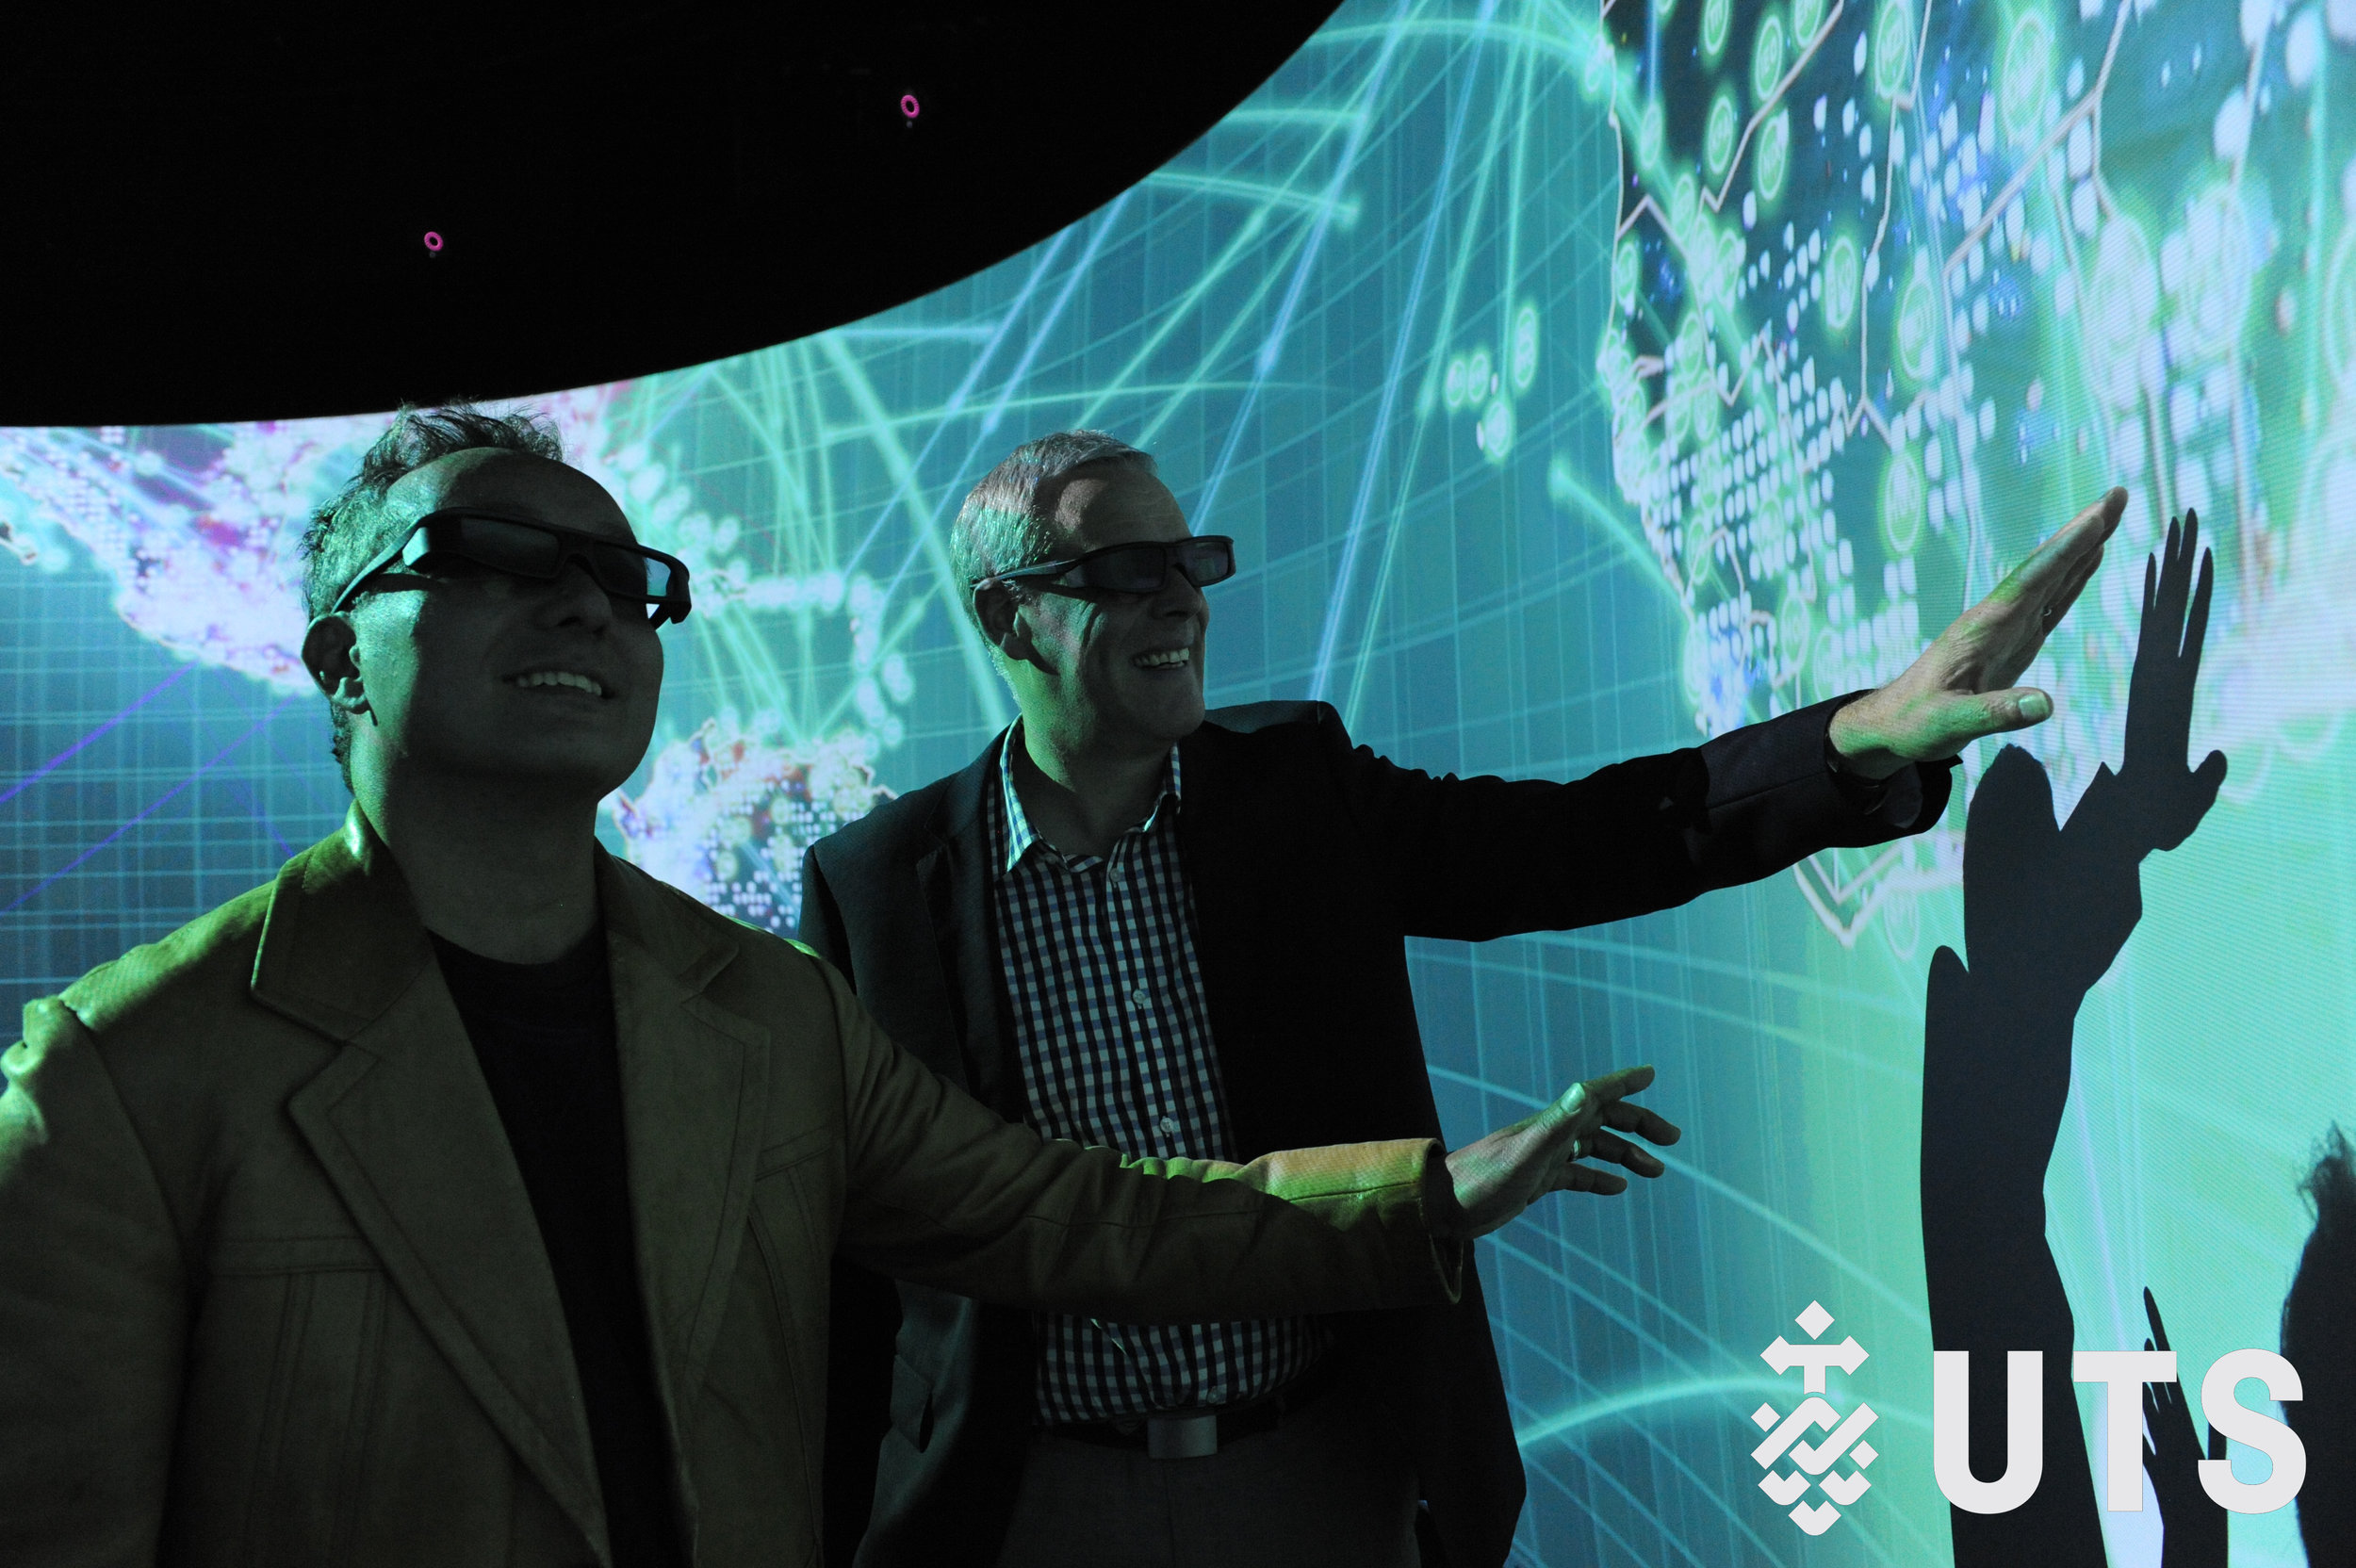 The UTS Data Arena is a powerful immersive facility that can help researchers, business and government simplify complex information.